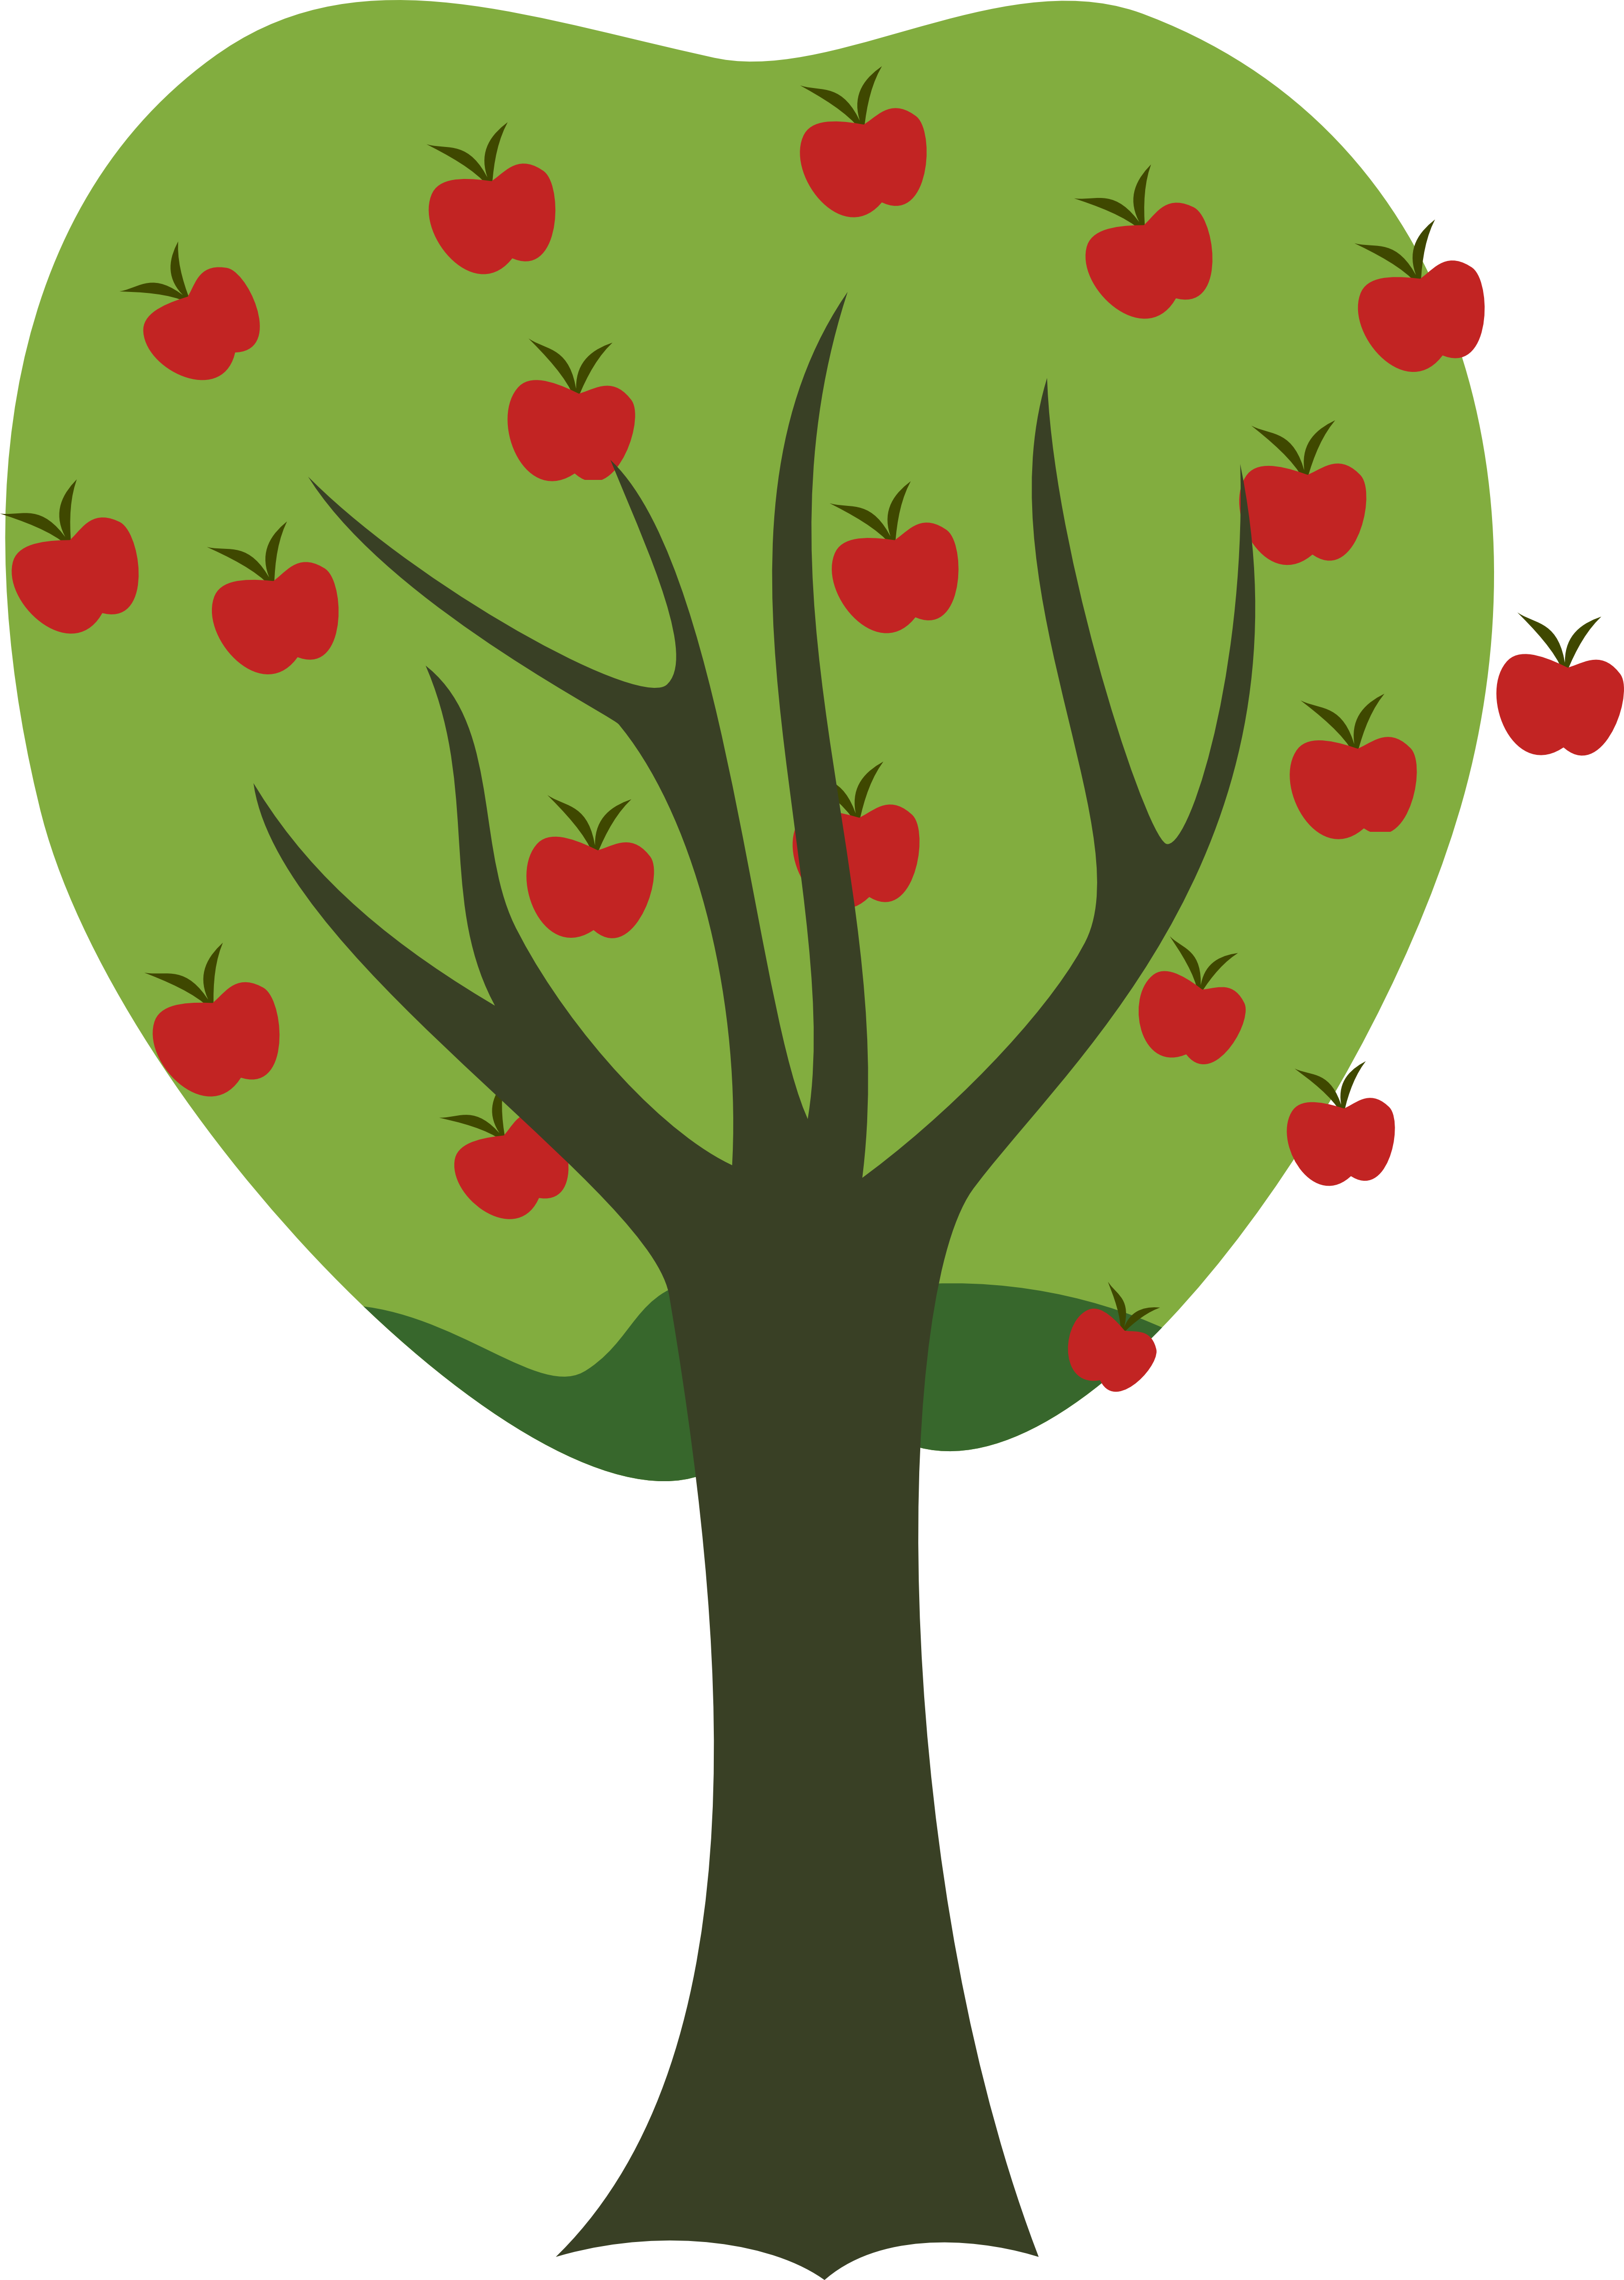 Apple Tree Drawing | Free download best Apple Tree Drawing on ...